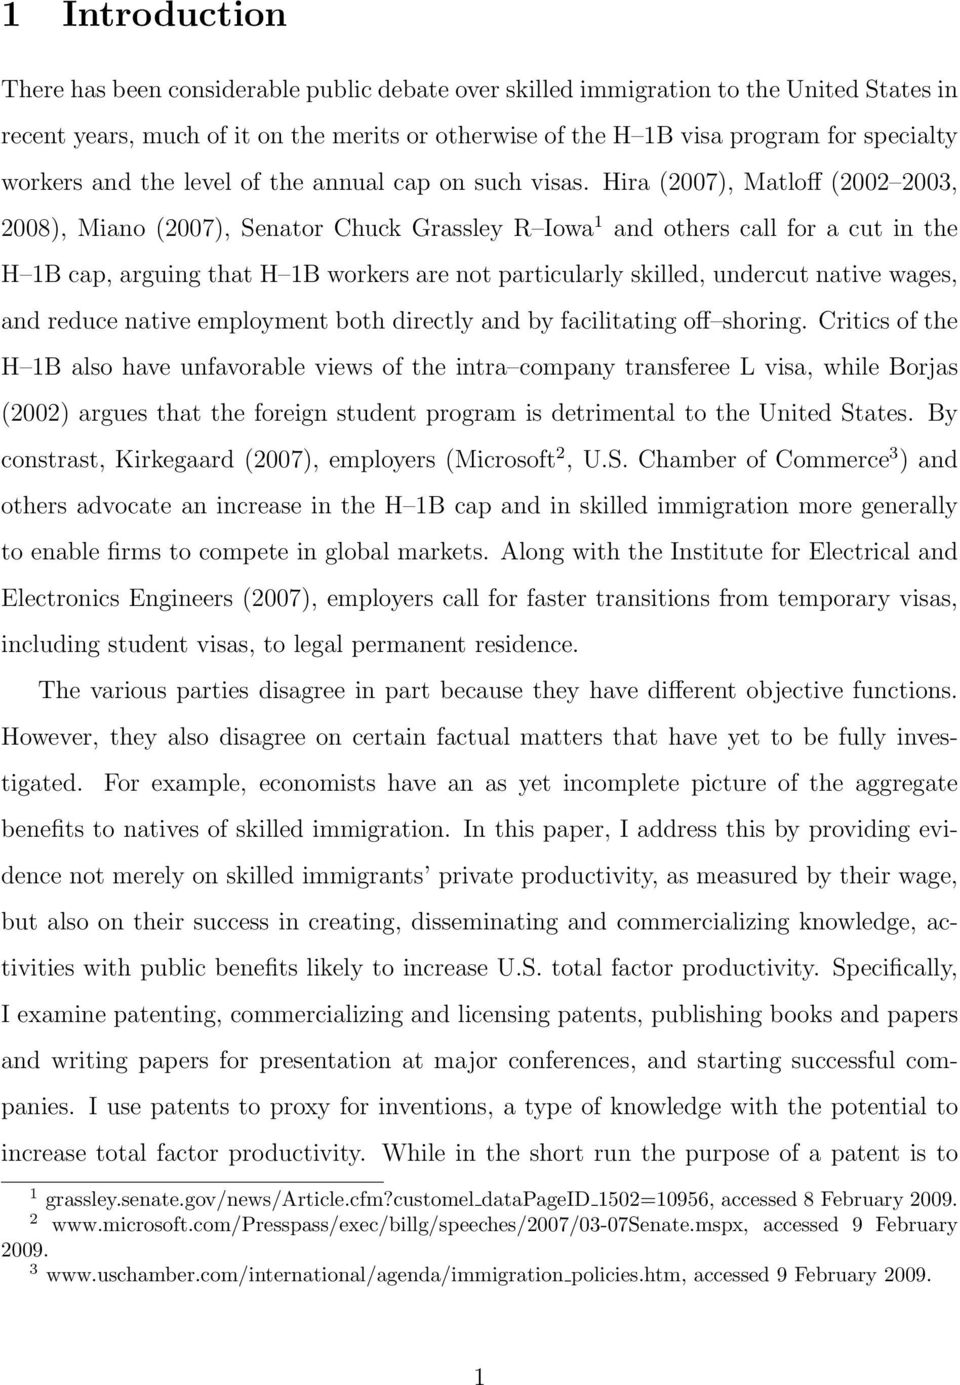 Hira (2007), Matloff (2002 2003, 2008), Miano (2007), Senator Chuck Grassley R Iowa 1 and others call for a cut in the H 1B cap, arguing that H 1B workers are not particularly skilled, undercut